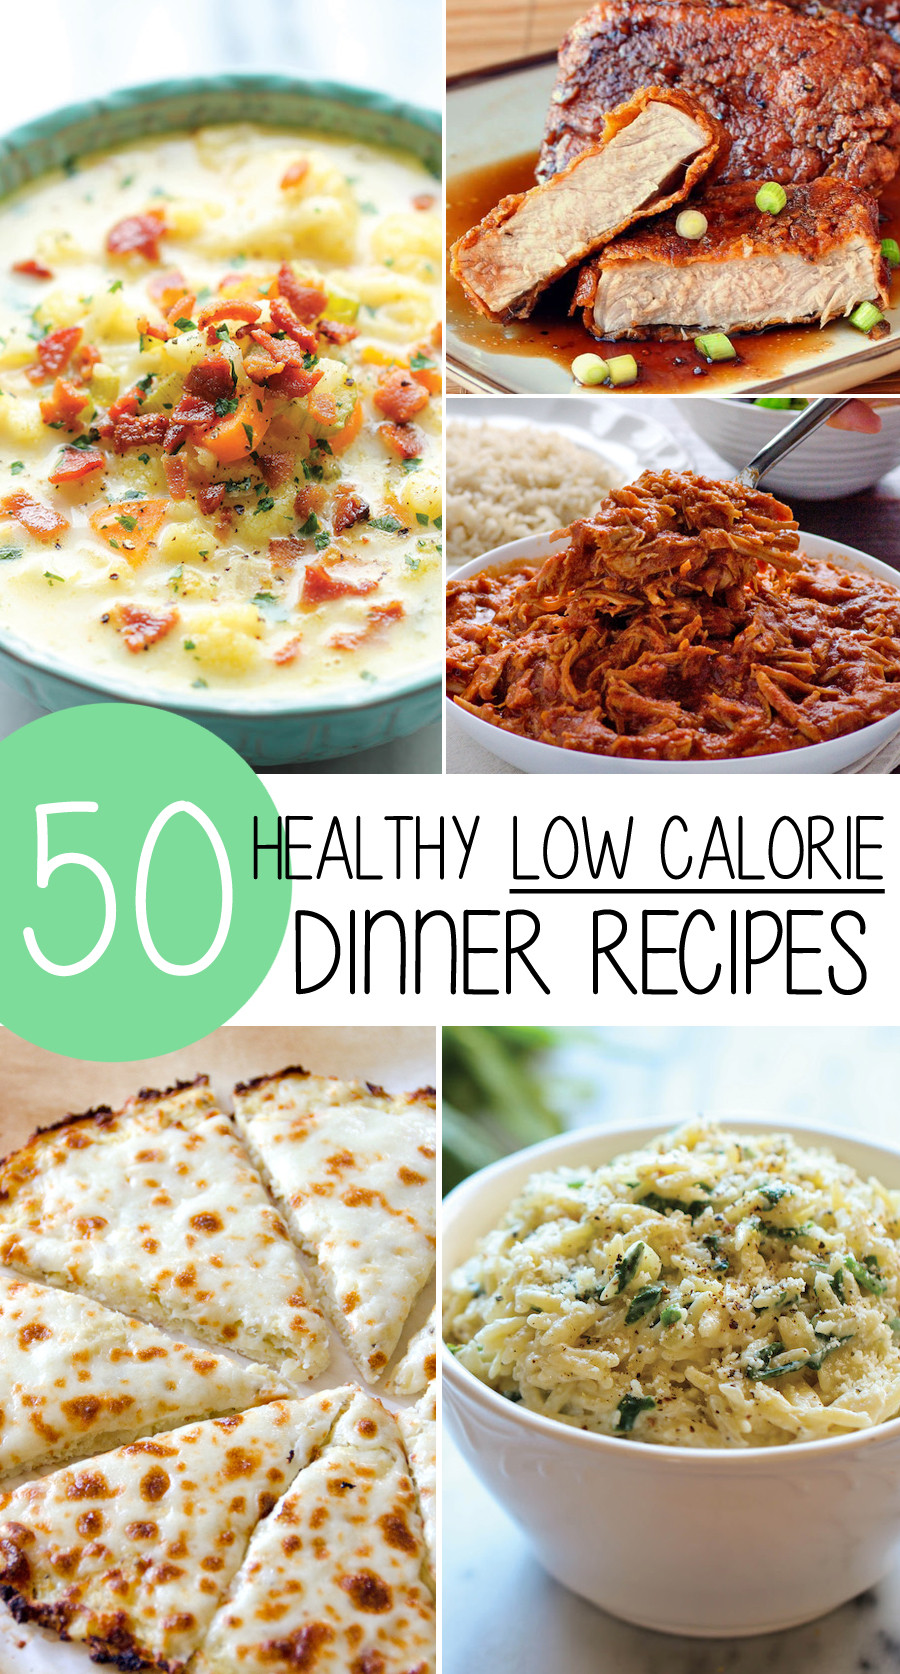 Easy Healthy Recipes For Weight Loss  50 Healthy Low Calorie Weight Loss Dinner Recipes